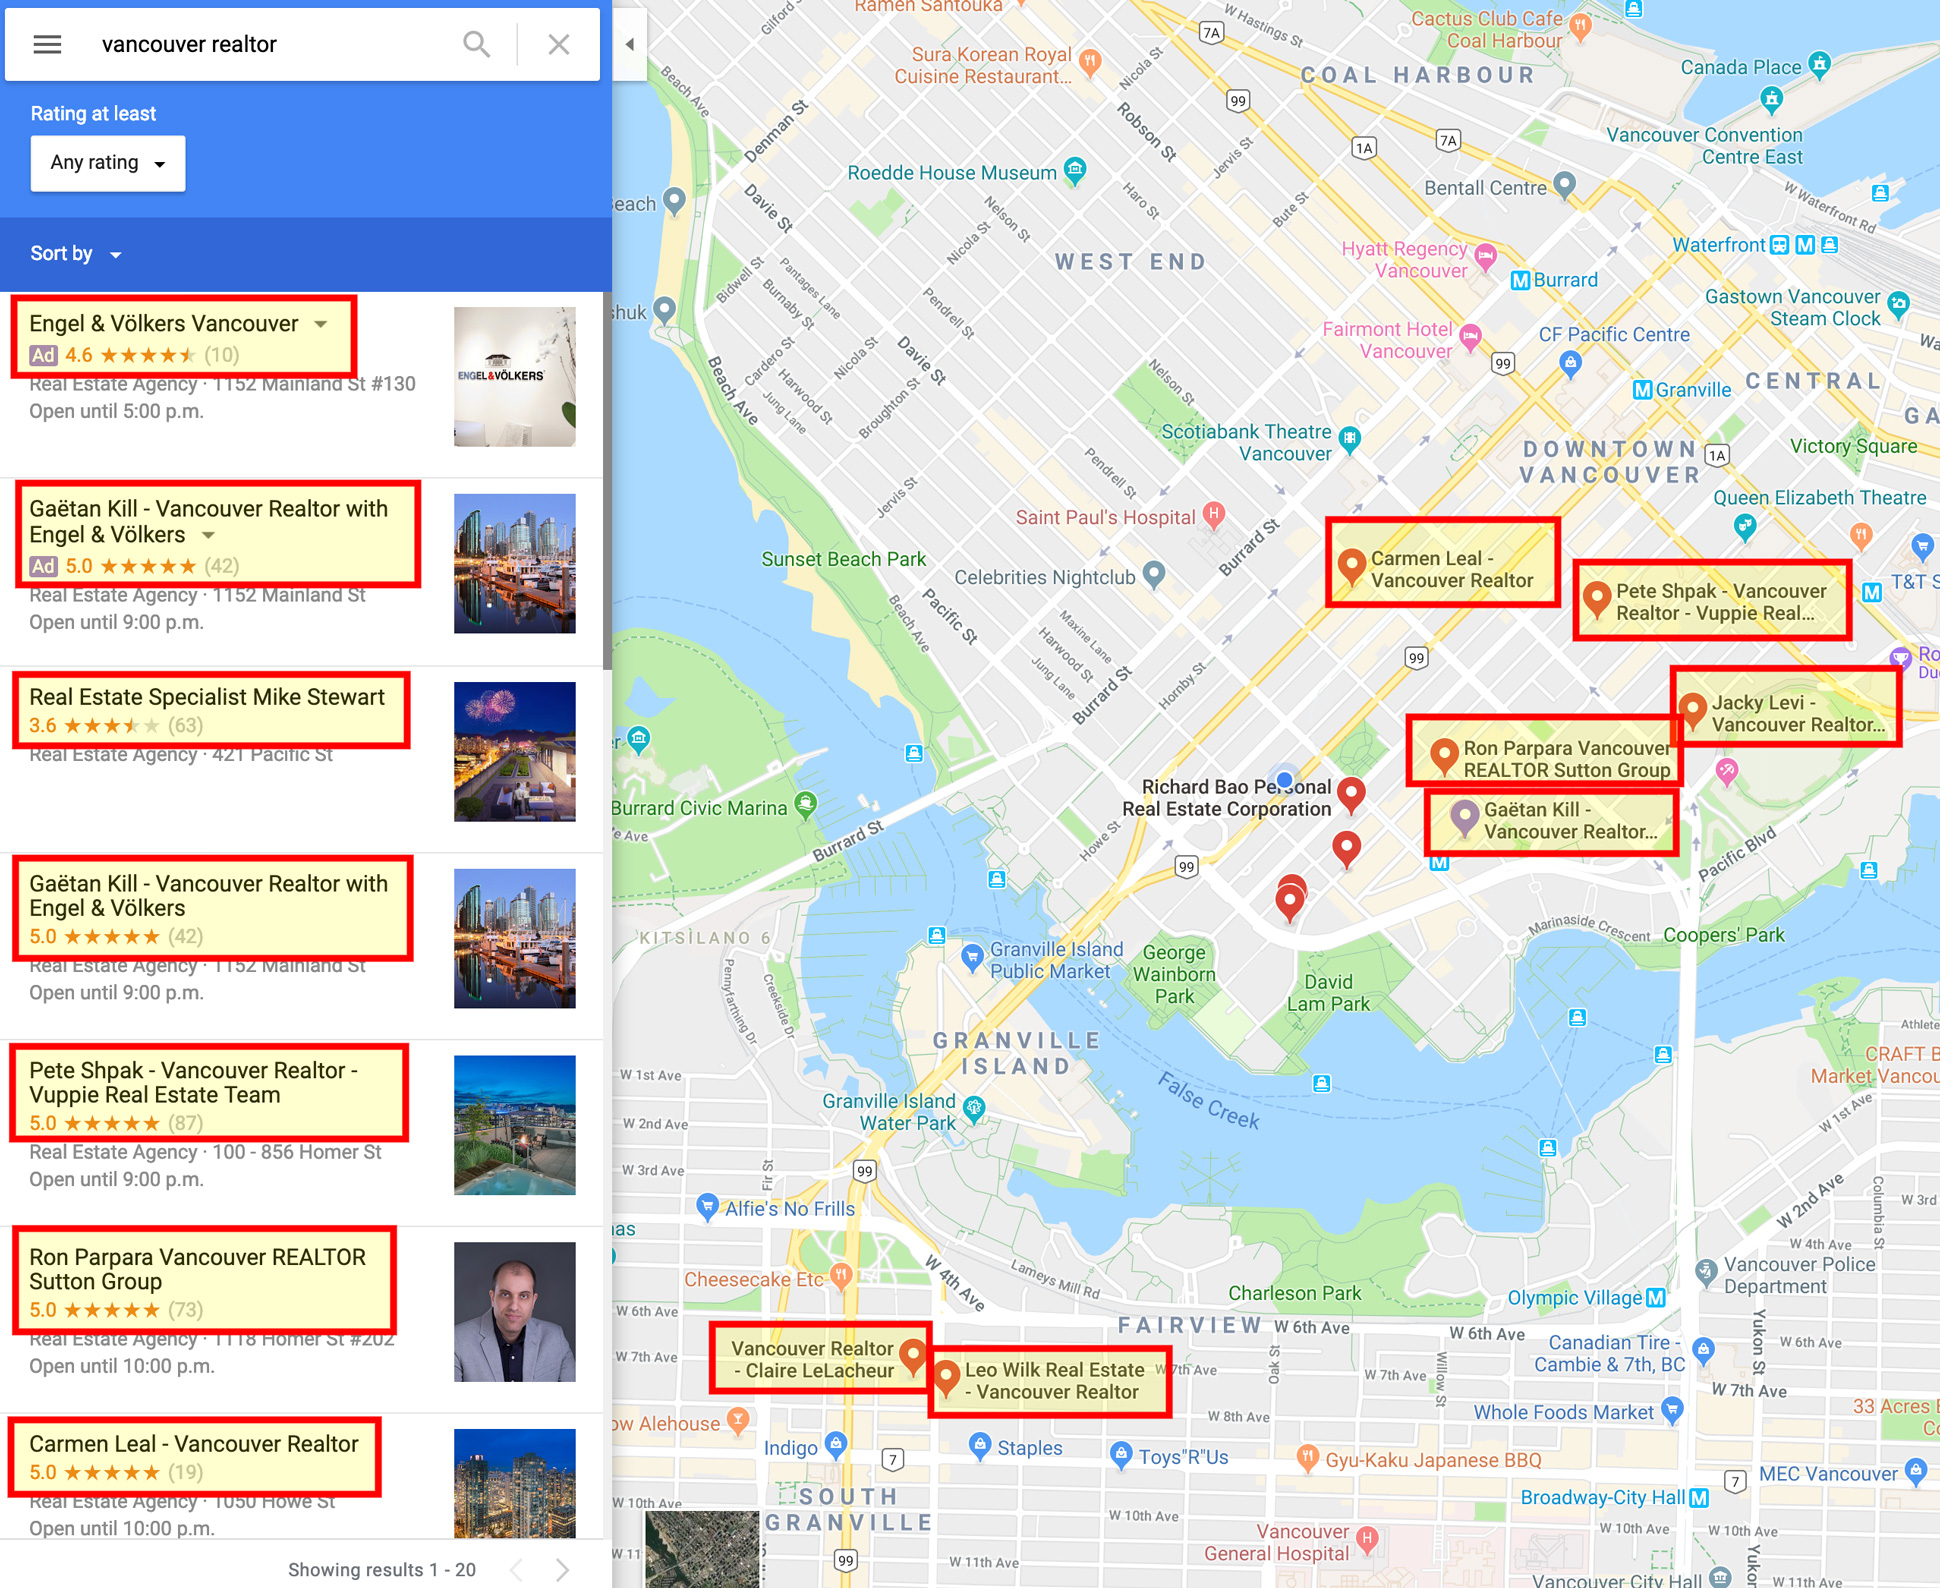 Vancouver Realtor Maps on Google